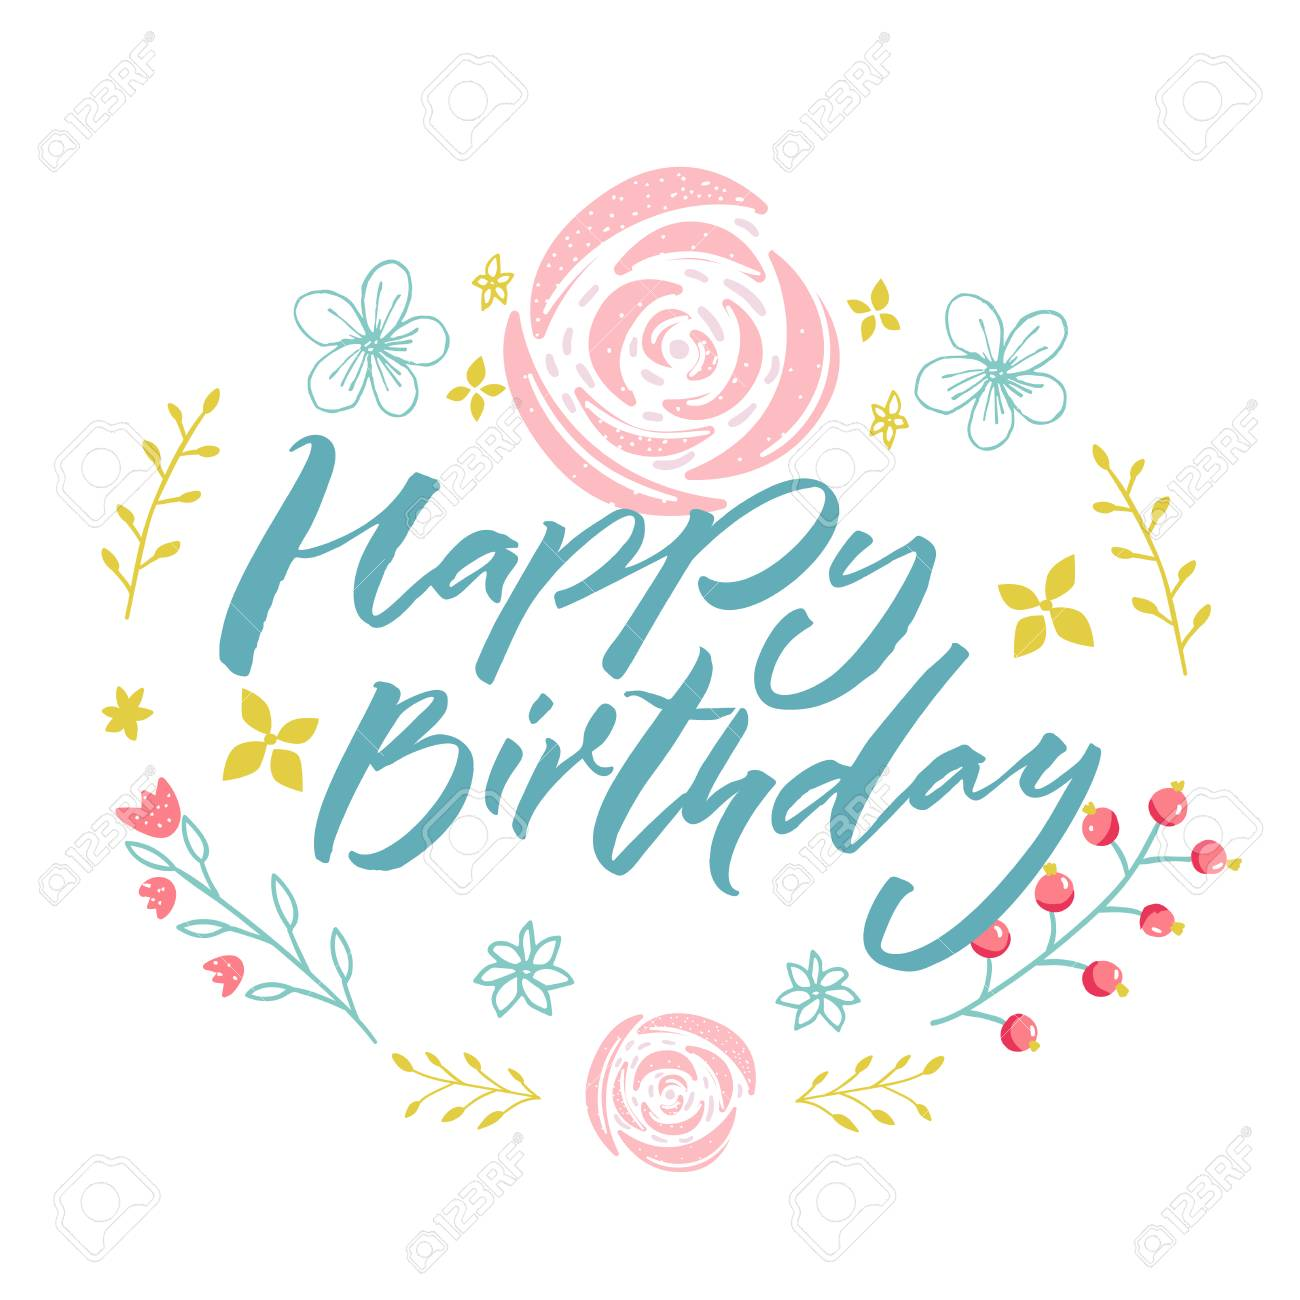 Happy Birthday - blue text in floral wreath with pink flowers and branches. Greeting card template. - 97541106